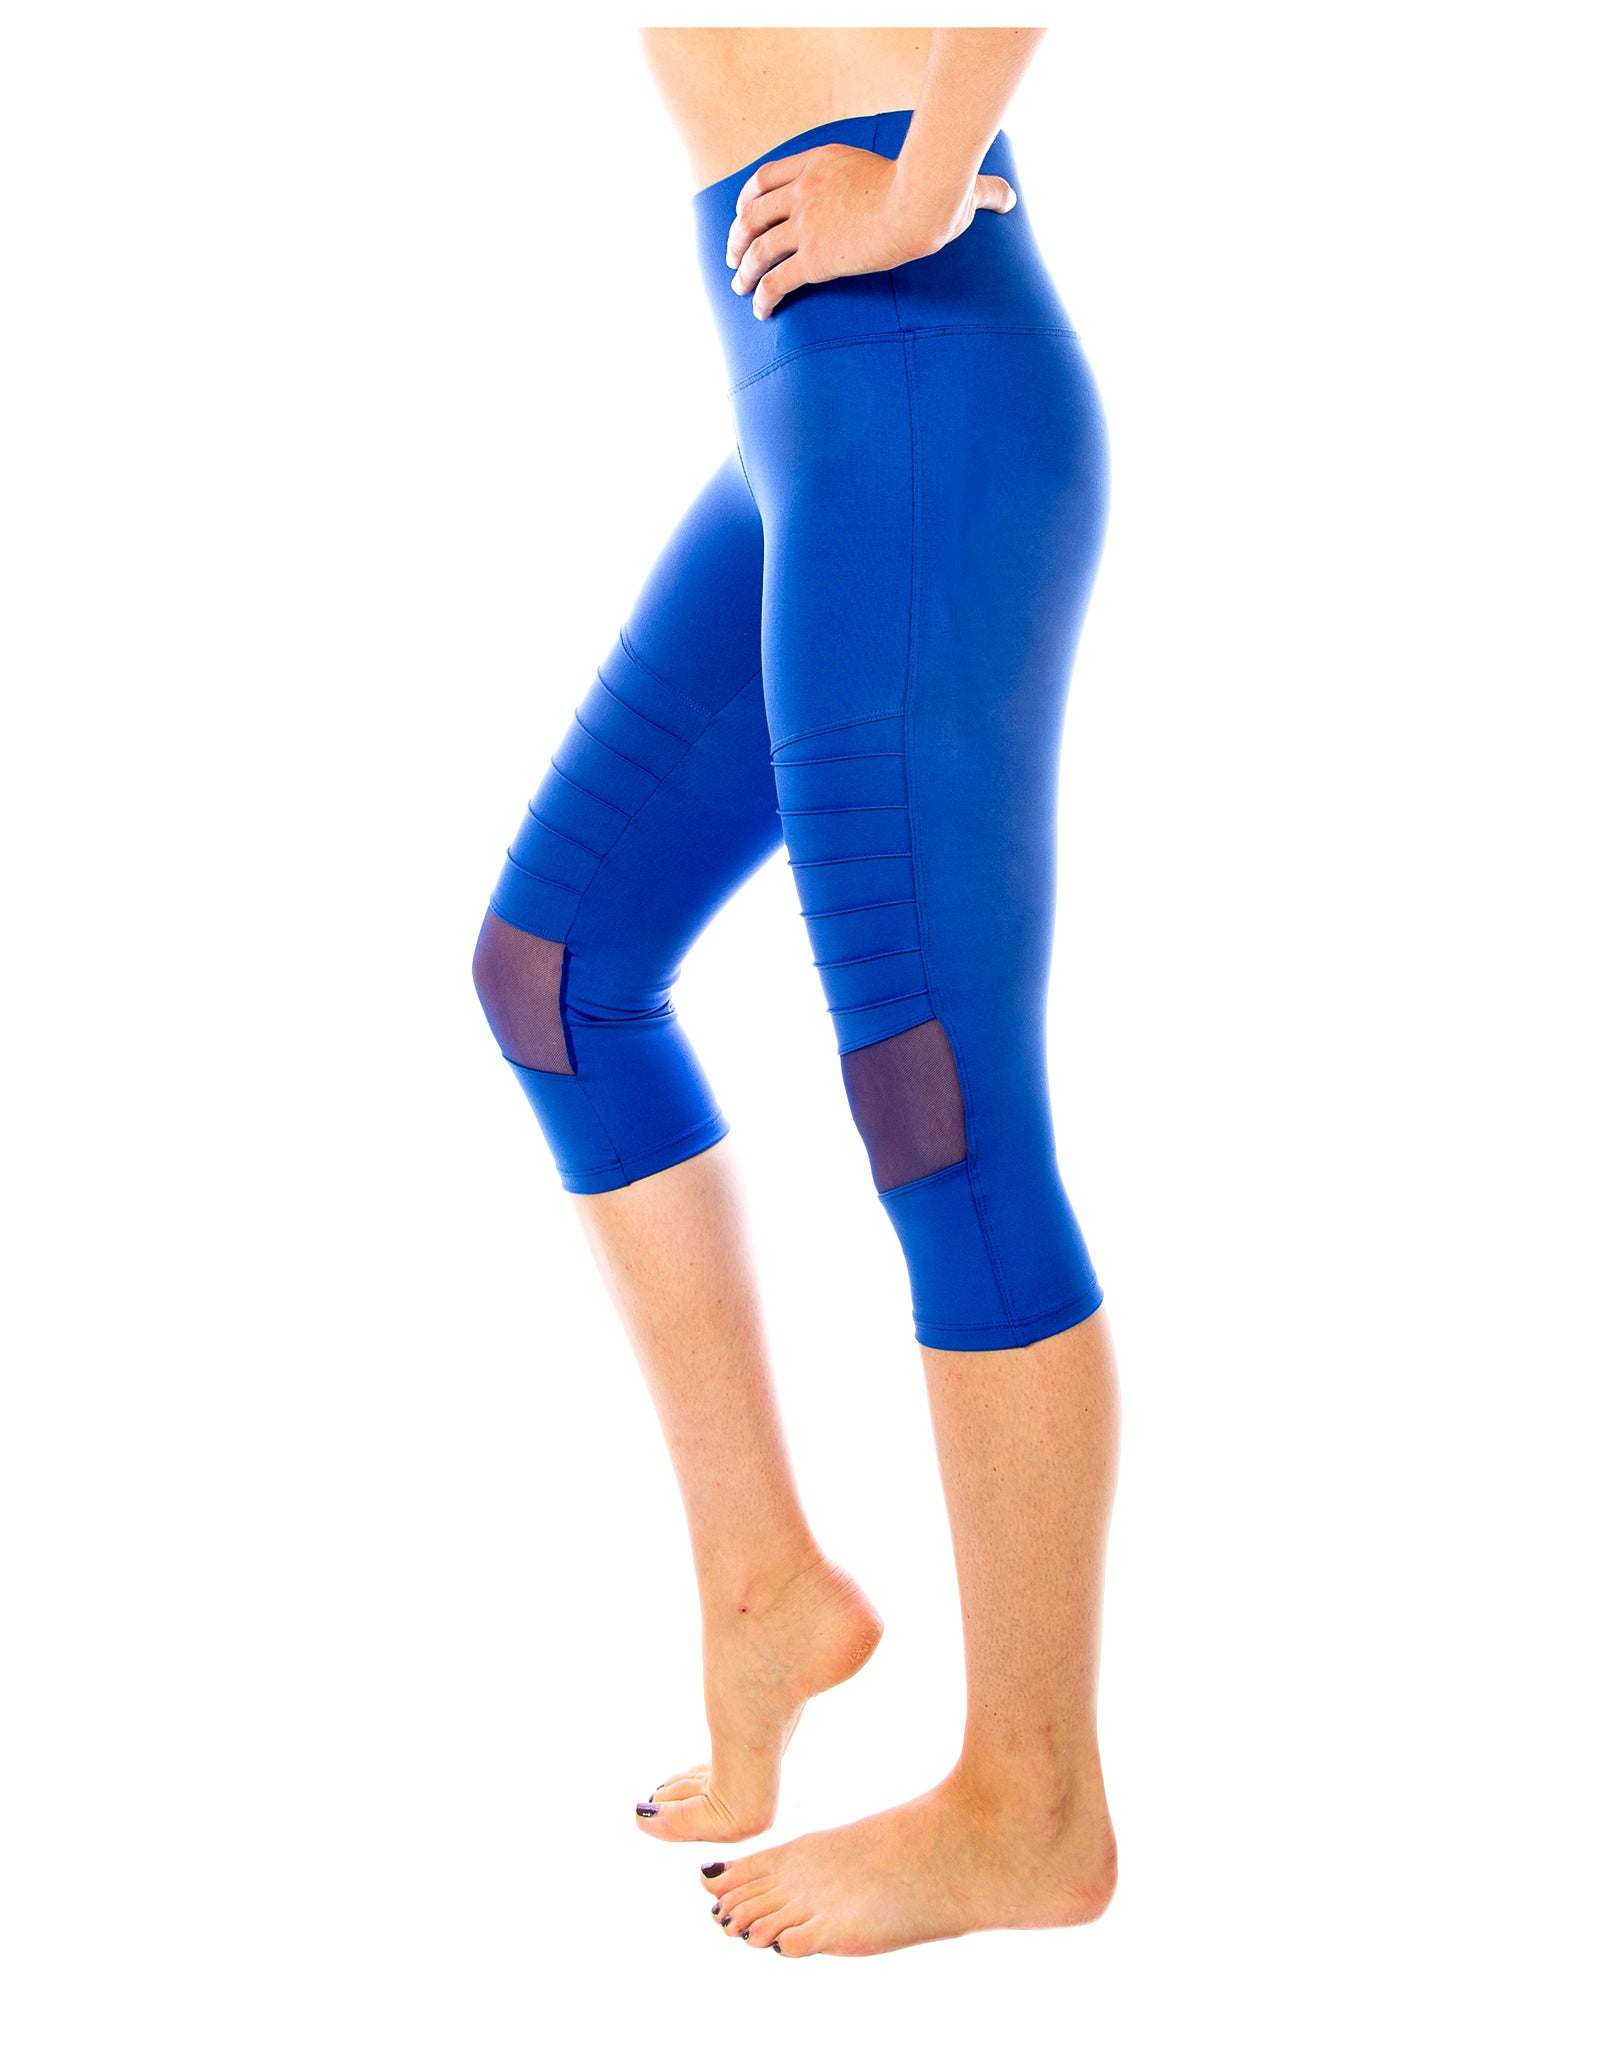 Moto Chick Capri Yoga Pants - Blue